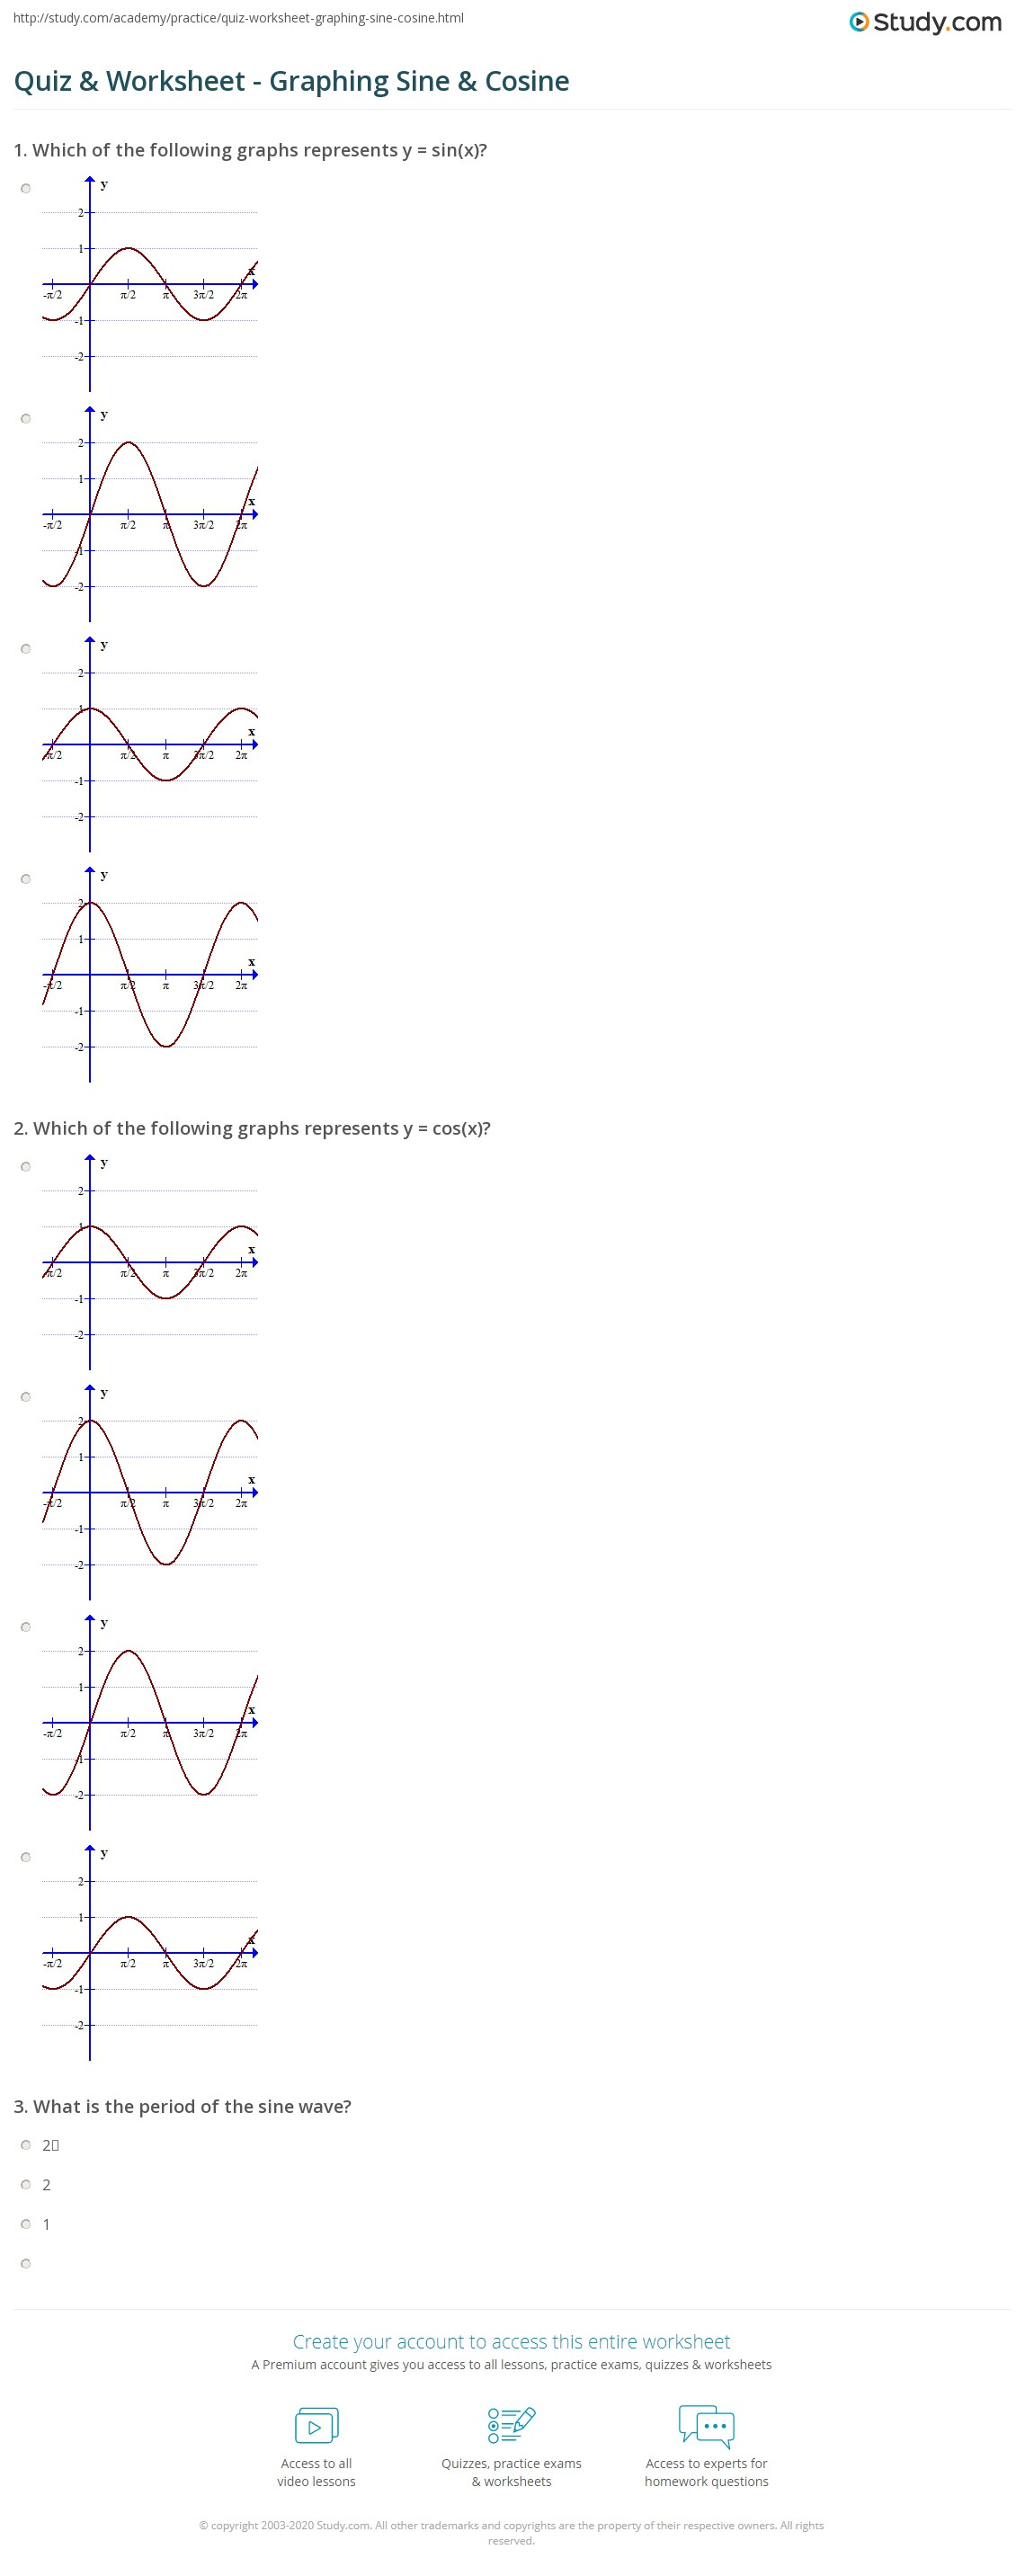 print graphing sine and cosine worksheet - Graphing Sine And Cosine Worksheet